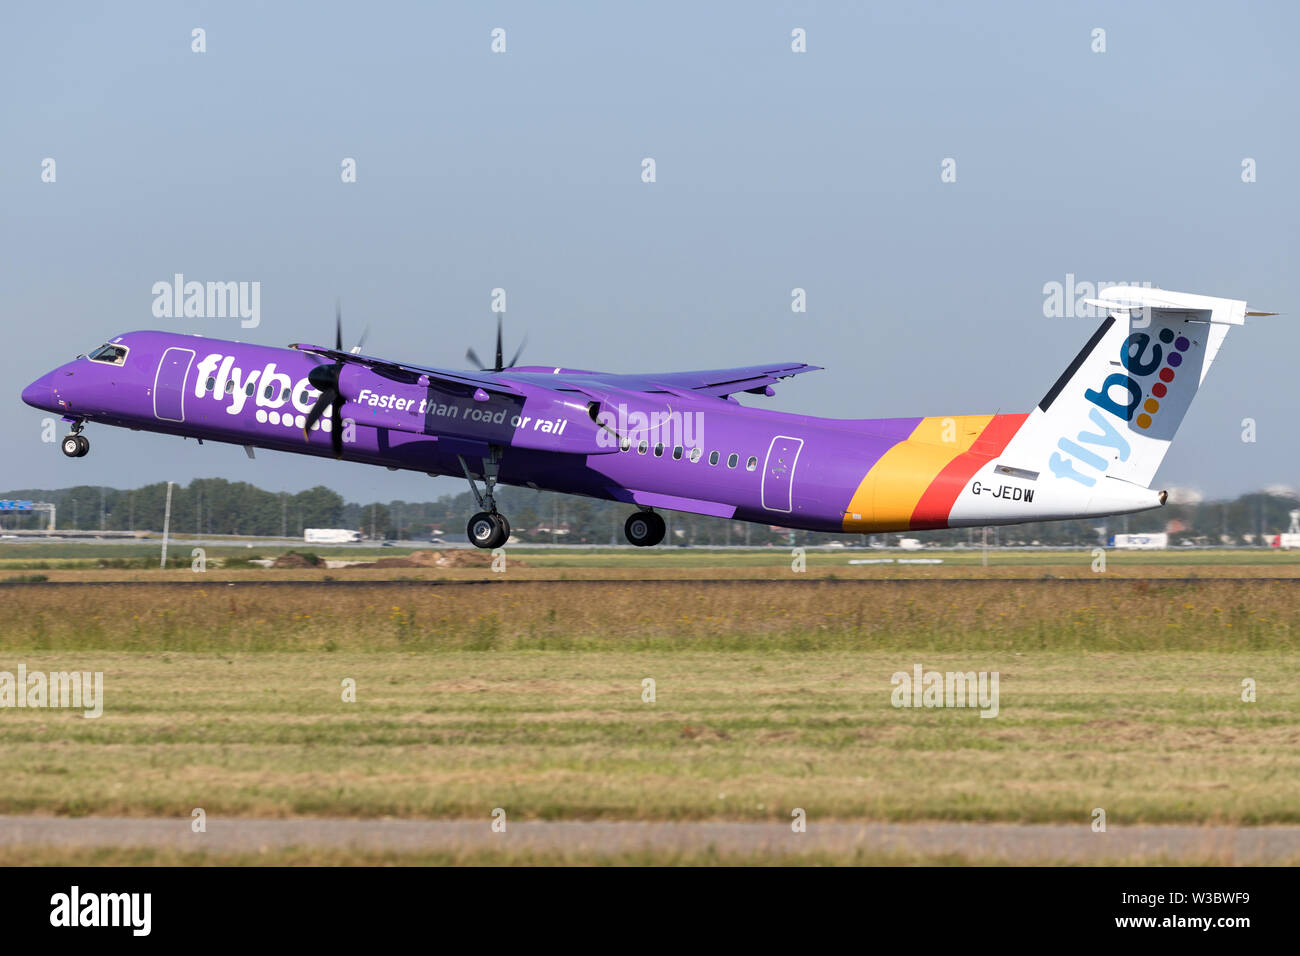 British flybe Bombardier DHC-8-400 Dash 8 with registration G-JEDW taking off runway 36L (Polderbaan) of Amsterdam Airport Schiphol. - Stock Image